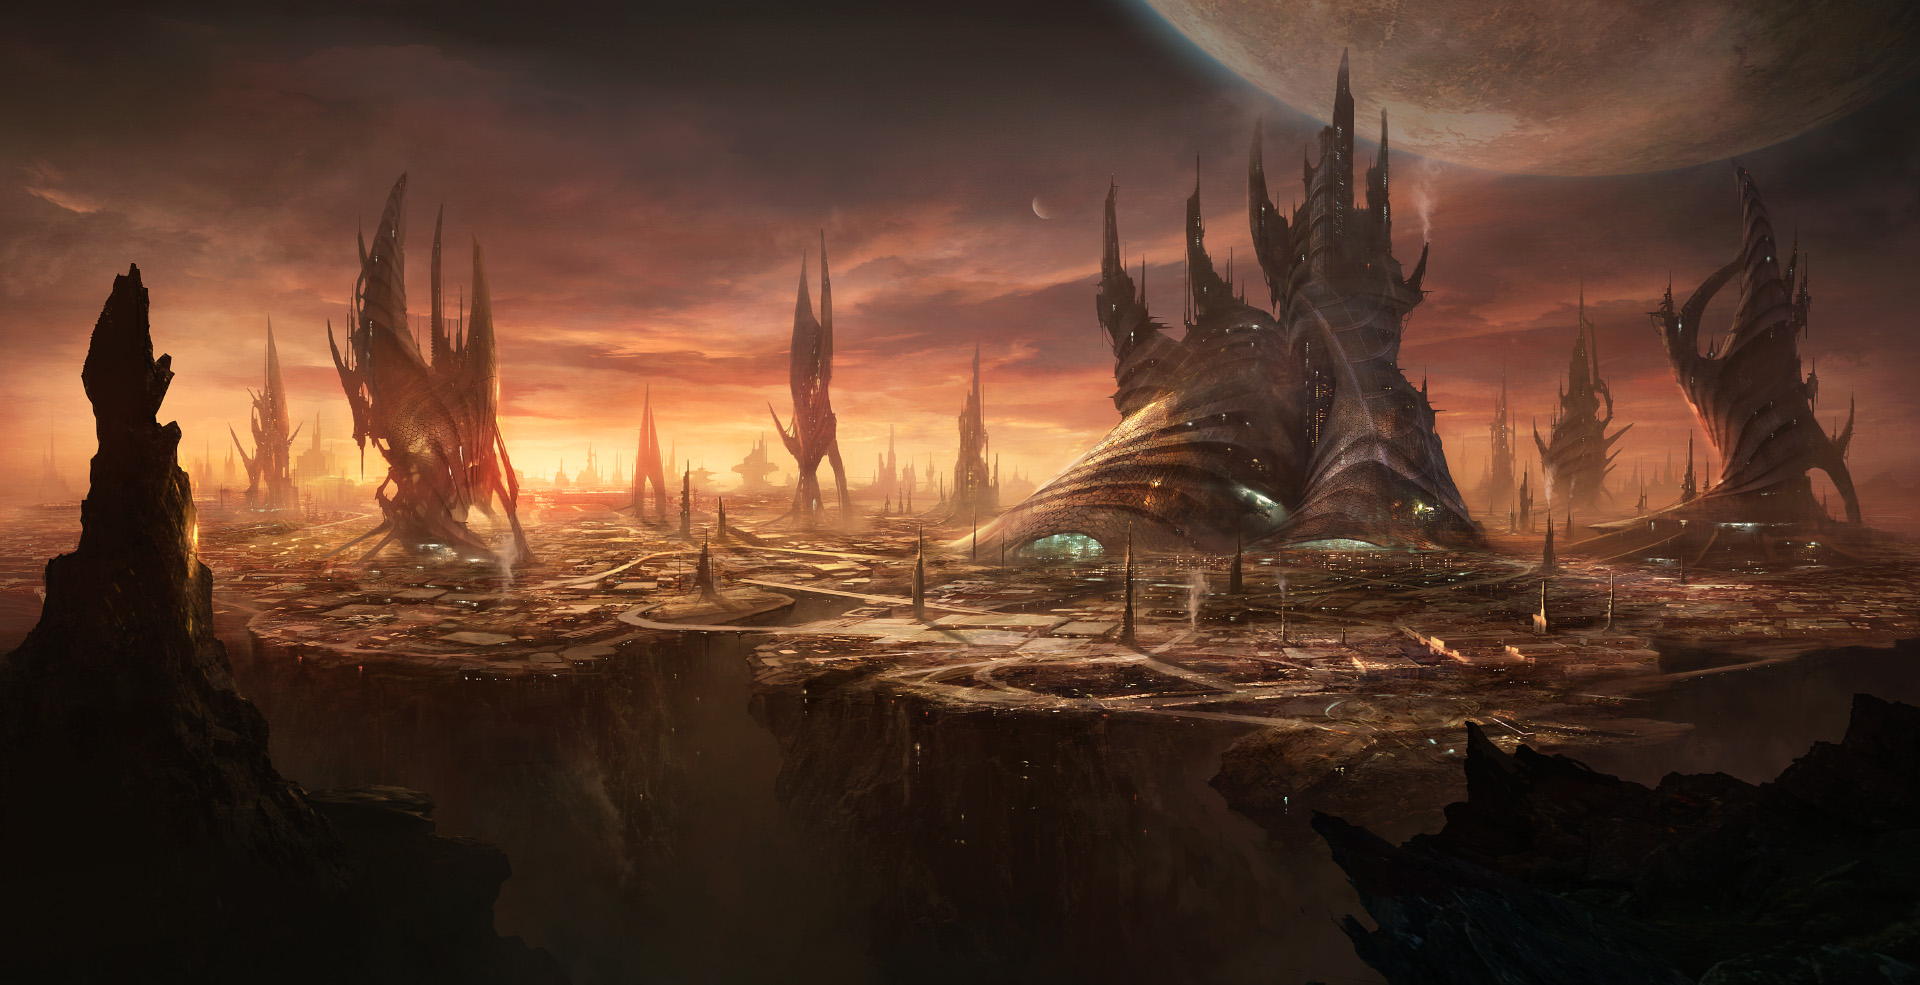 stellaris_dev_diary_02_01_20120928_alien_city